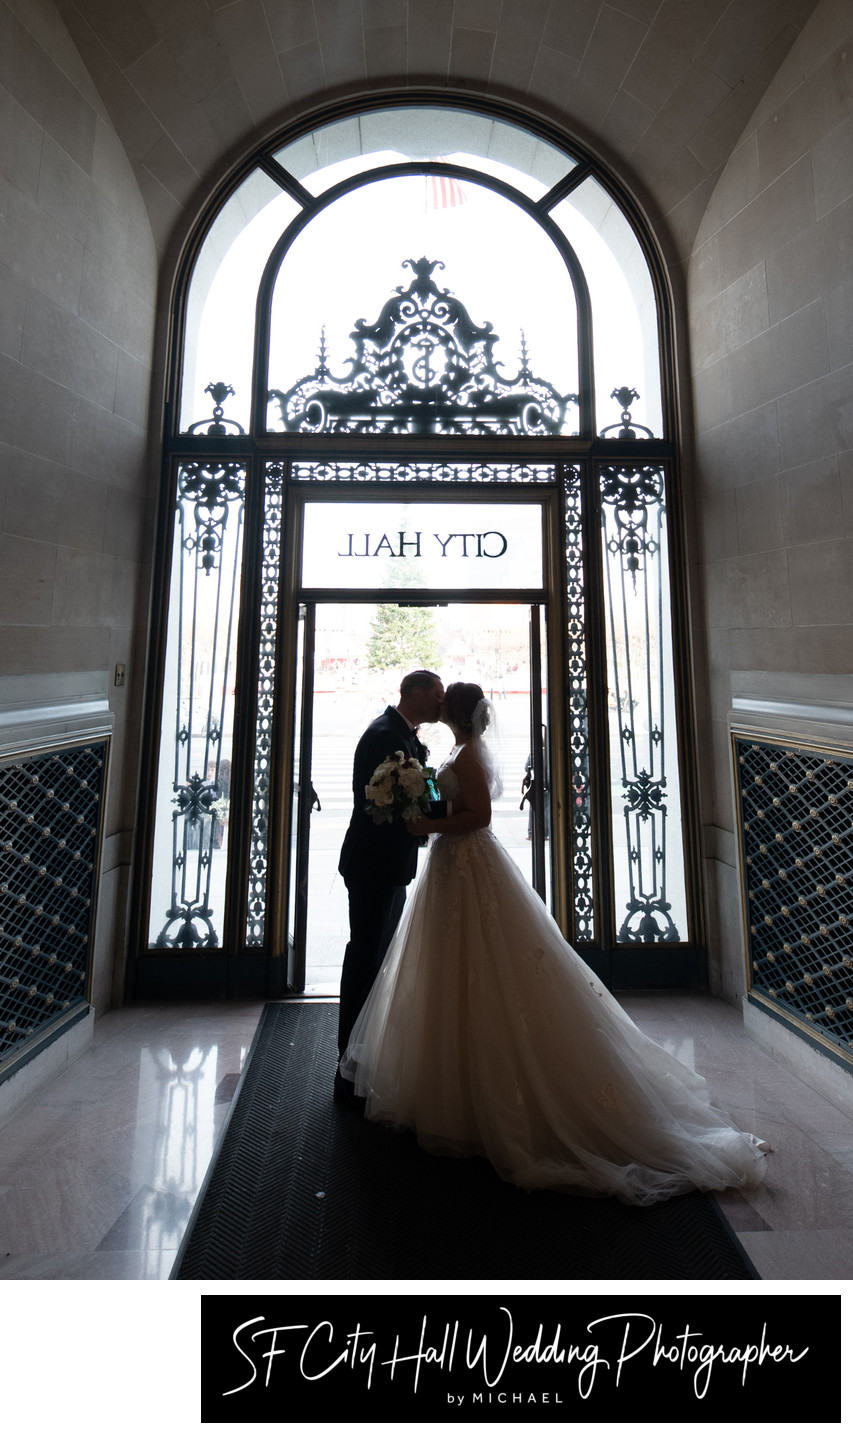 San Francisco City Hall Entrance Wedding Photography Image